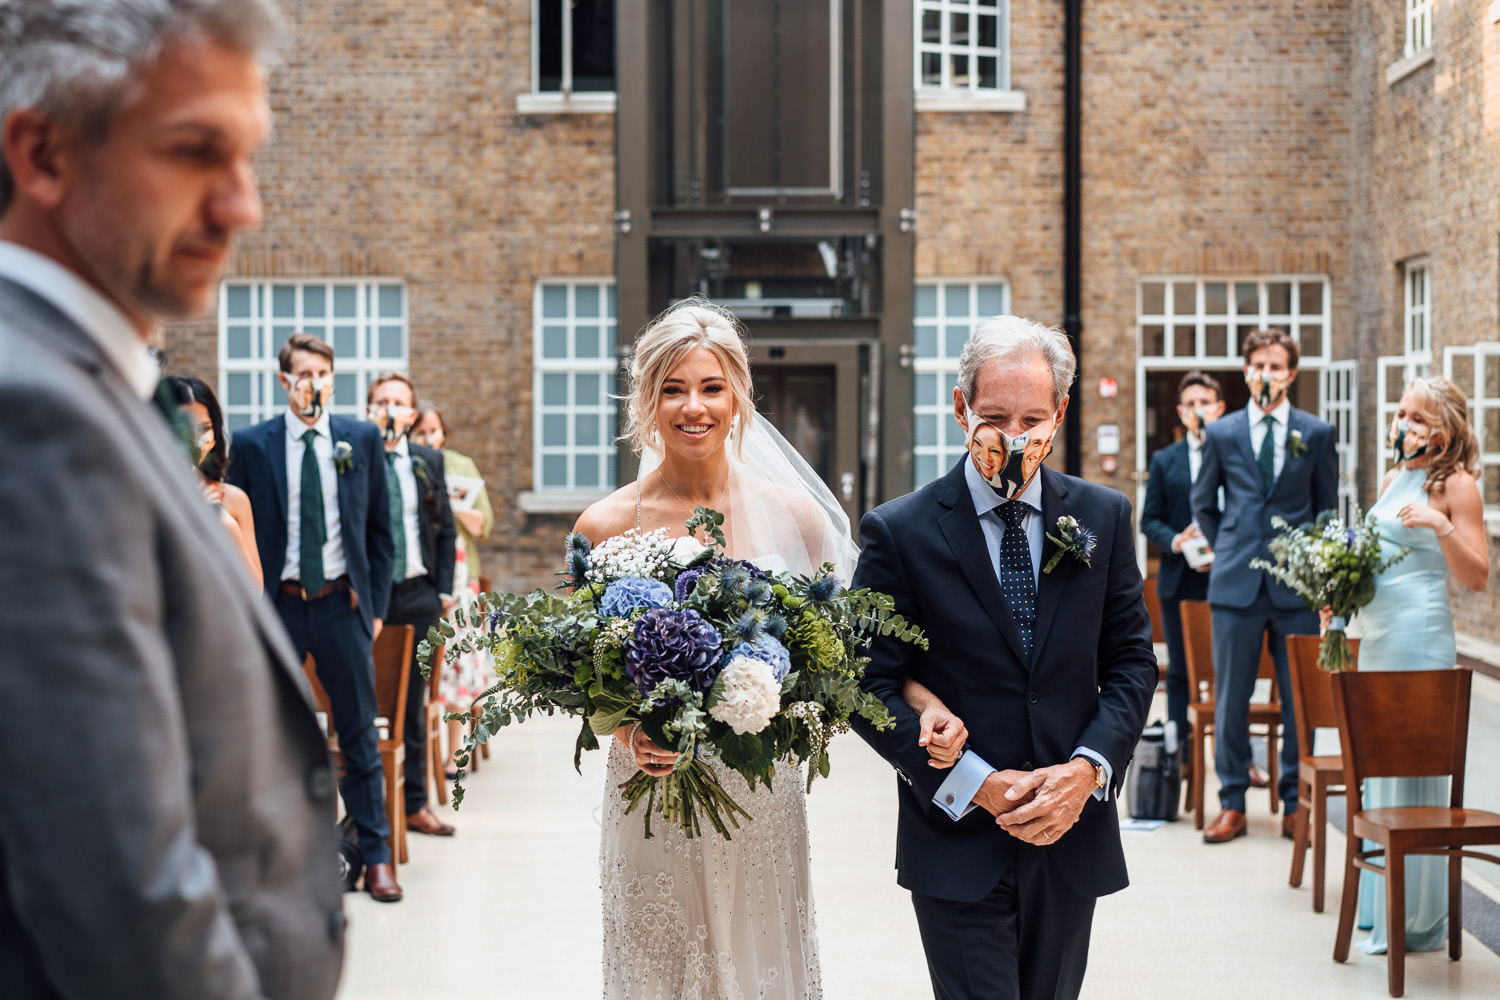 wedding ceremony in hackney town hall by creative london wedding photographer the shannons photography